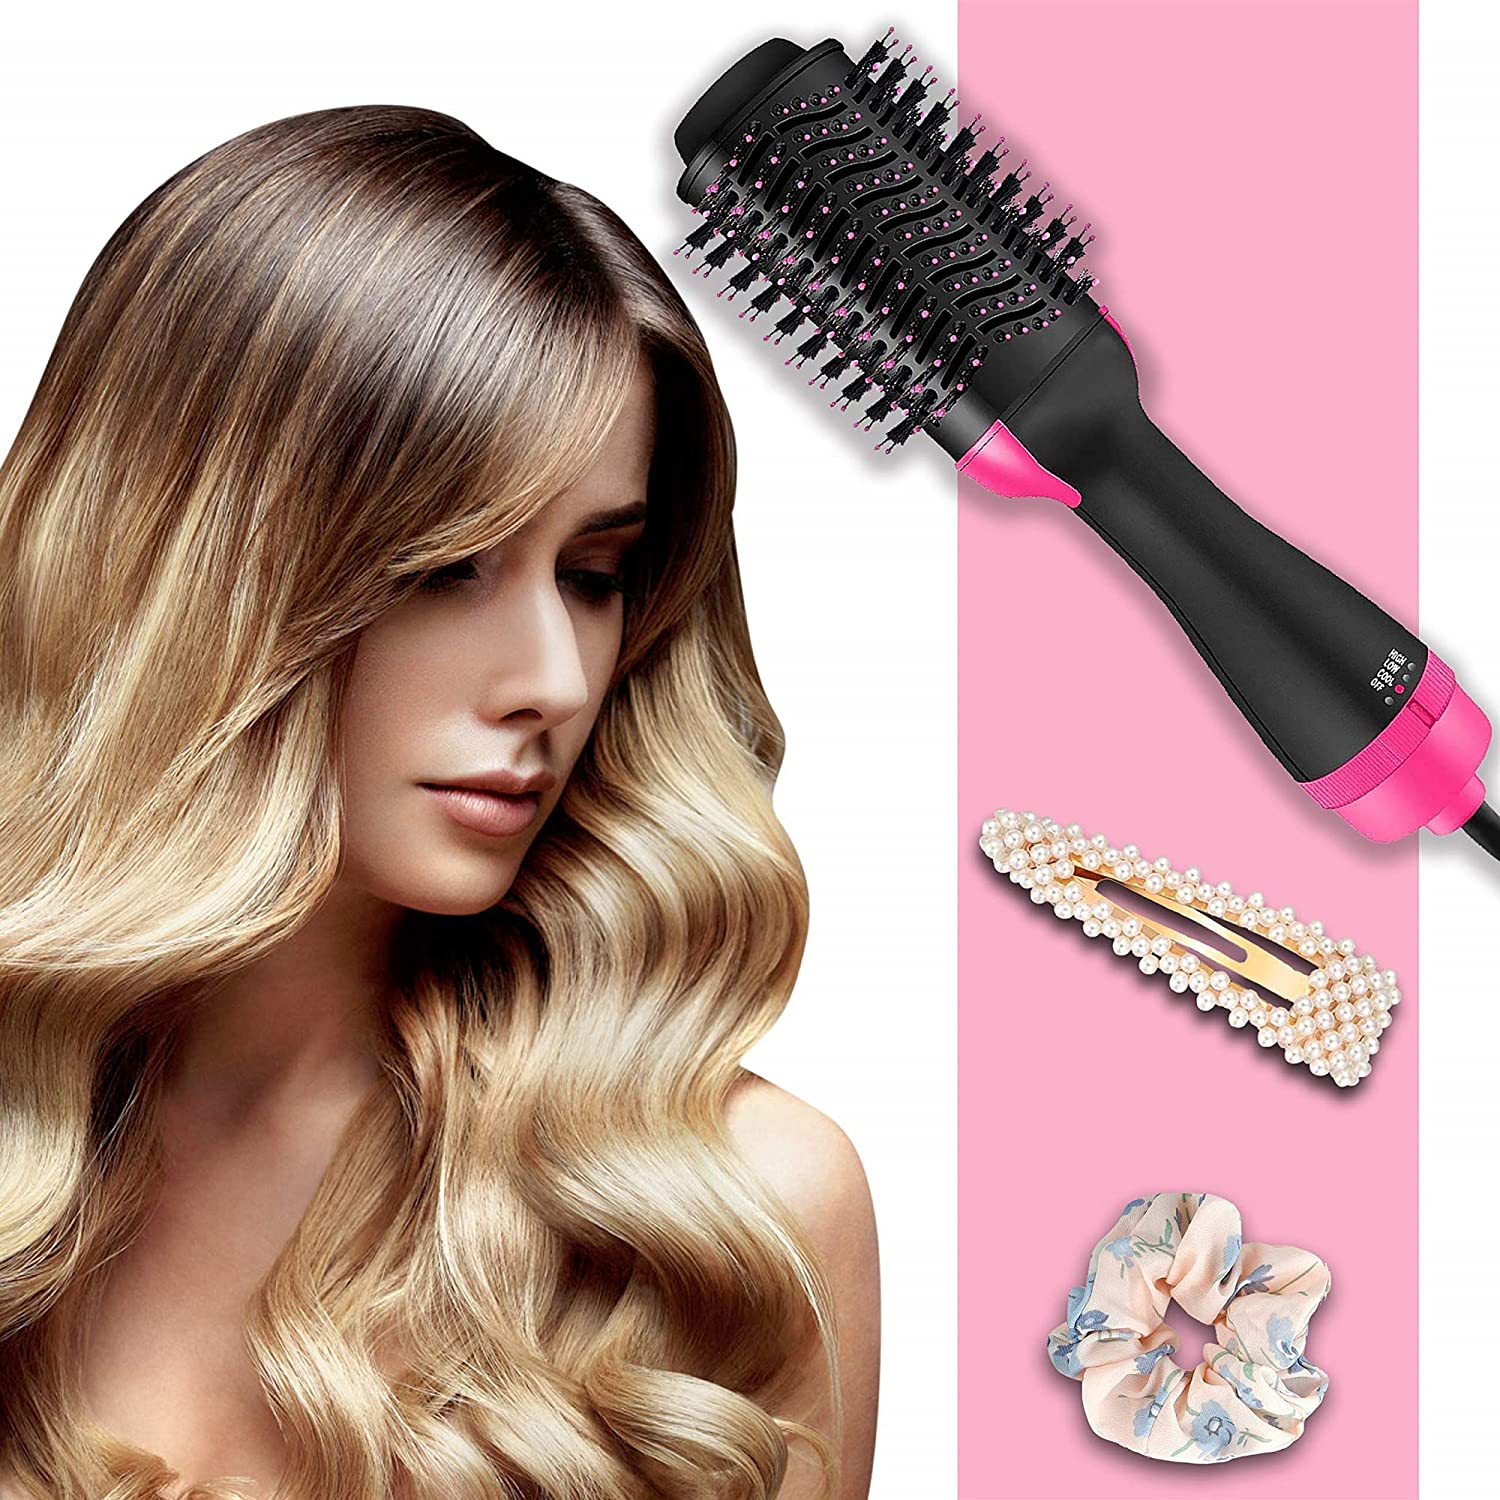 Hair Dryer Volumizer Electric Hot Air Brush Negative Ions 3-IN-1 Hair Dryer, Curler, Straightener, Blow Dryer Brush for Straightening, Curling, Styling Hair 4 Pearl Hair Clips 10 Hair Scrunchies